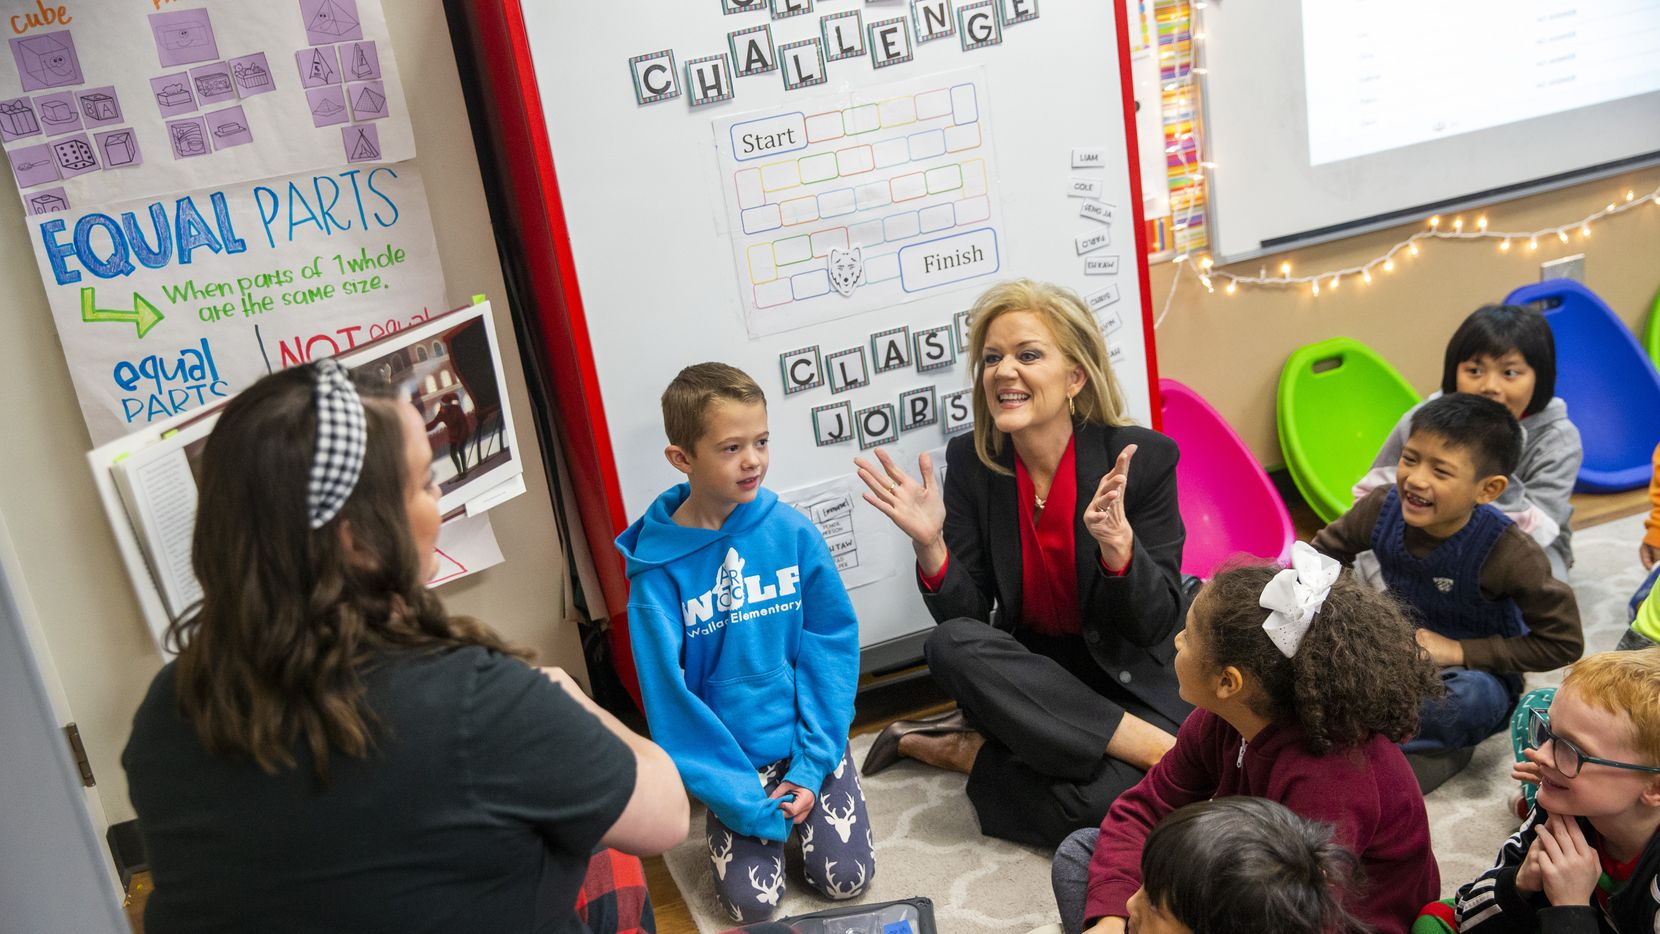 Richardson ISD Superintendent Jeannie Stone (center) reacts with students during a reading of The Polar Express in Kelly Kollaja's second grade classroom at Wallace Elementary School.